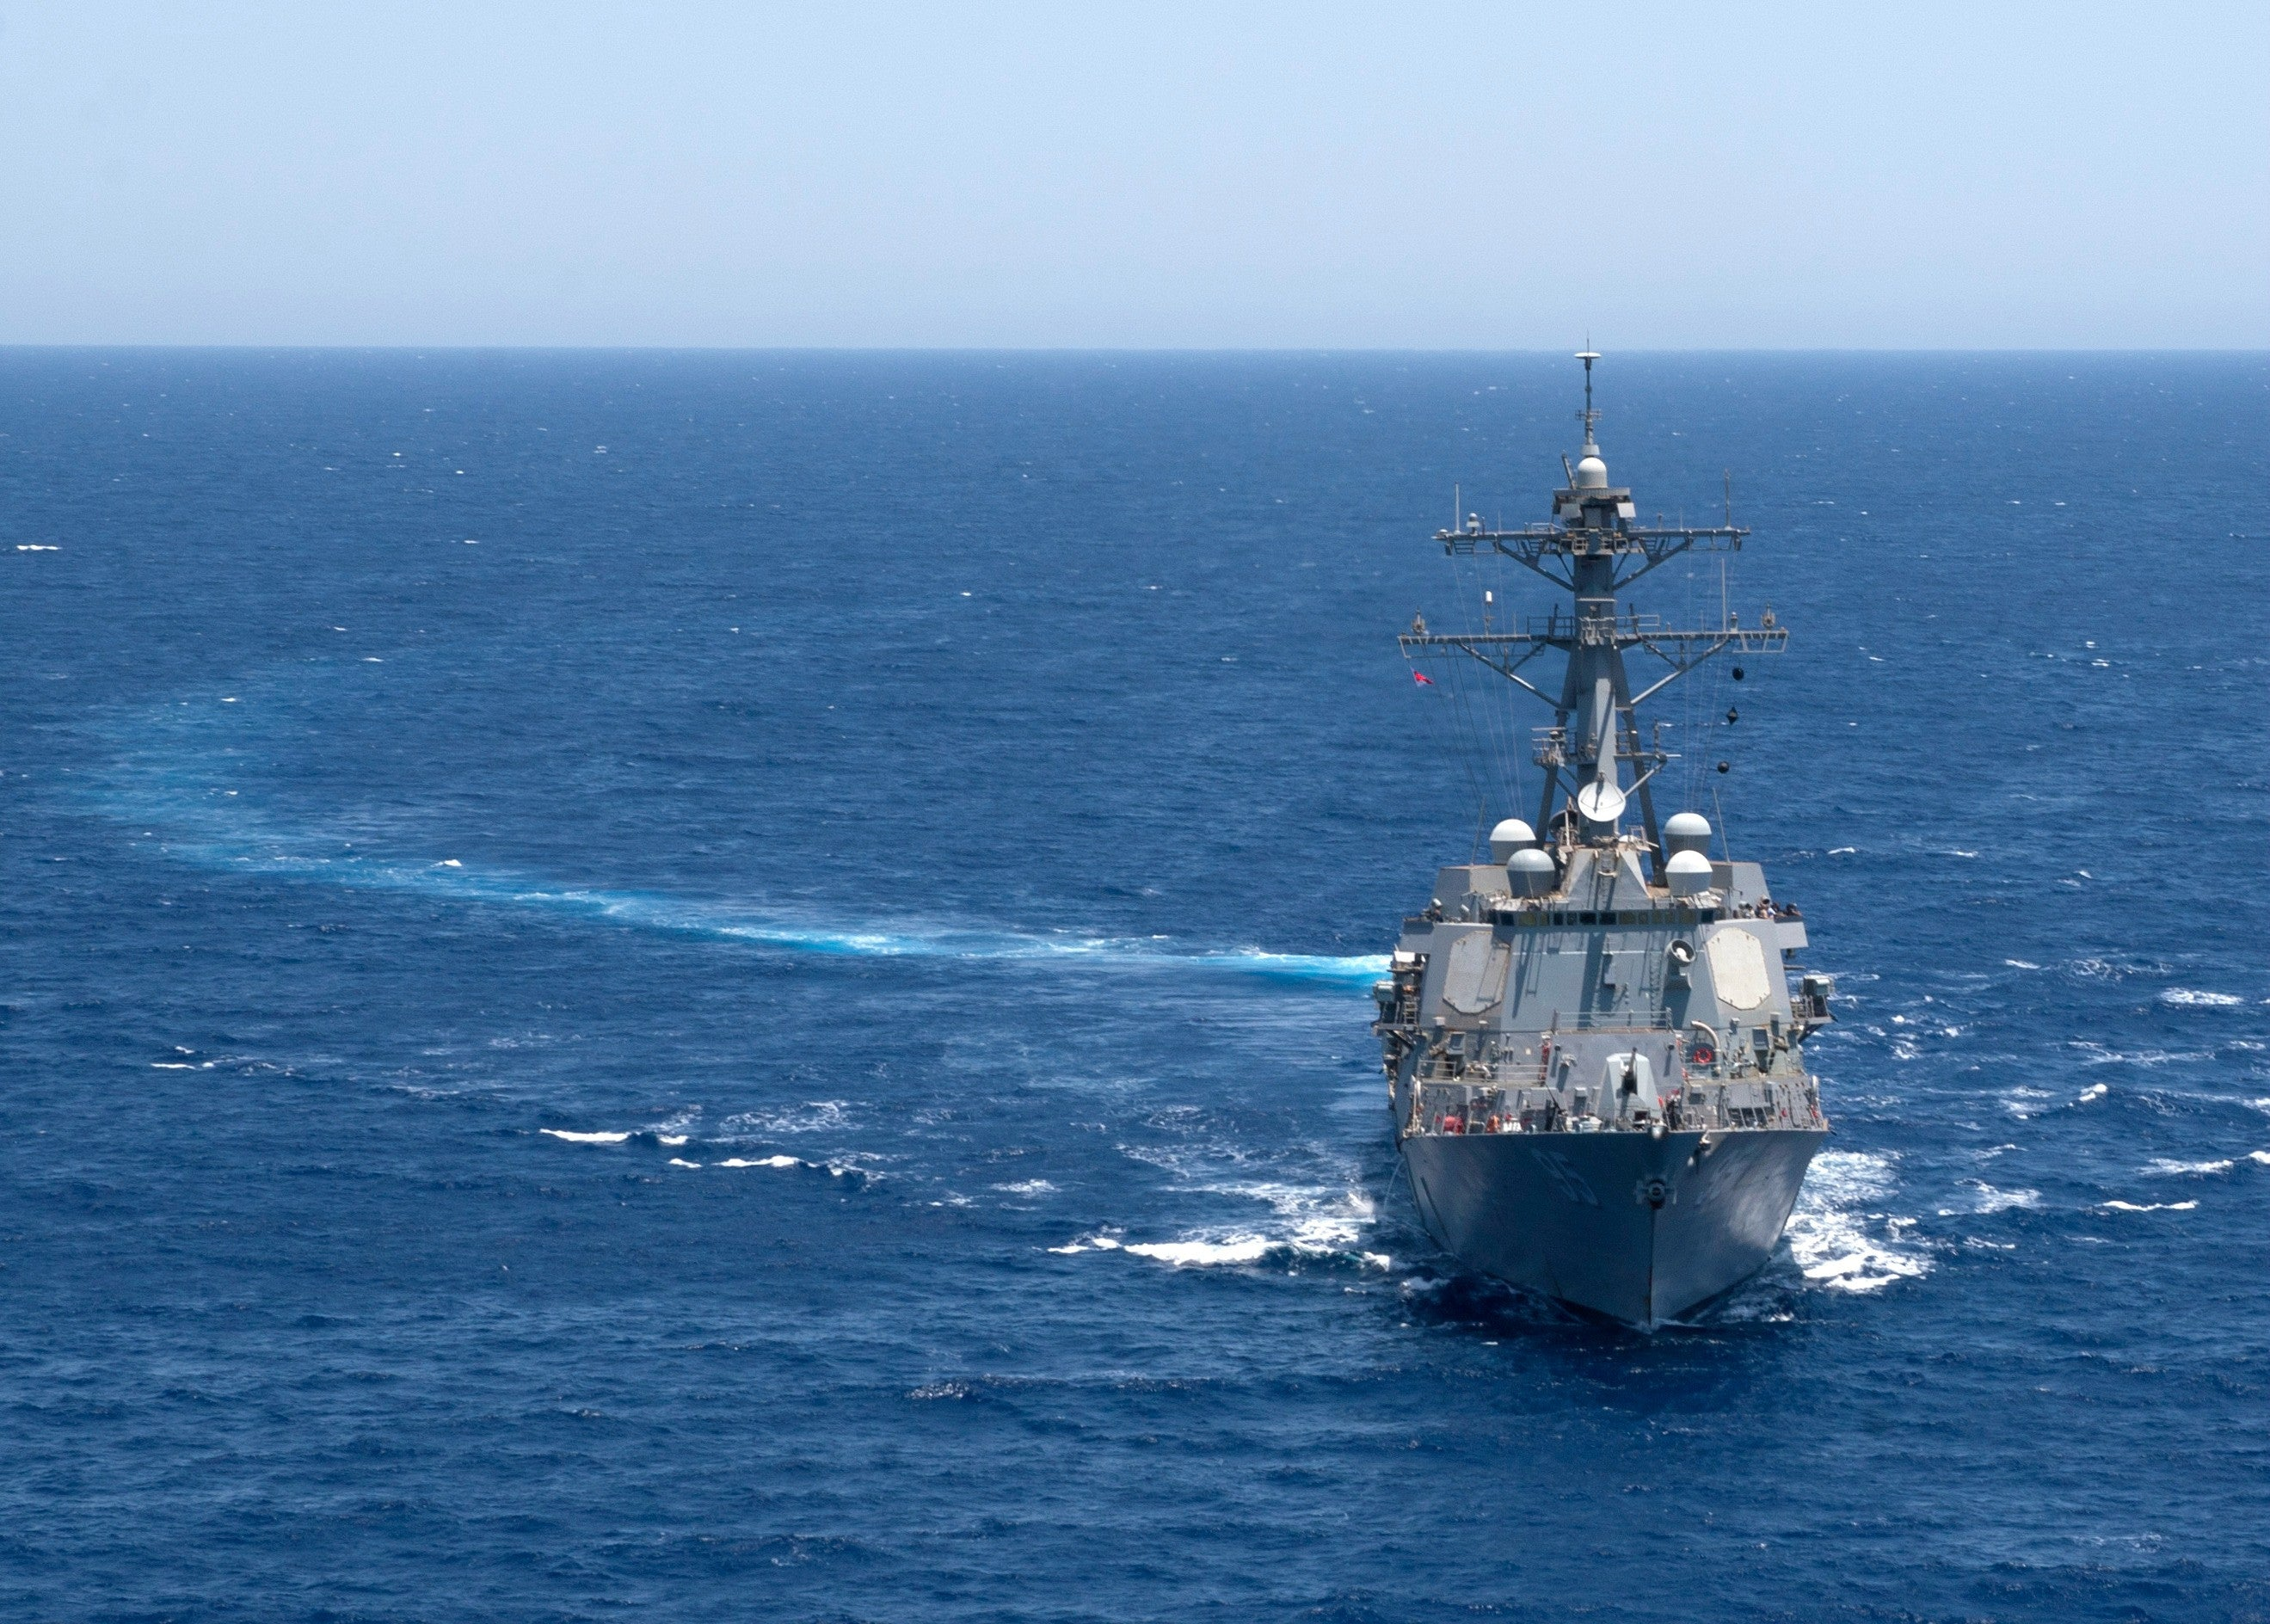 "USS James E. Williams DDG-95 Red Sea June 14, 2012 - 5 x 7"" Photograph"